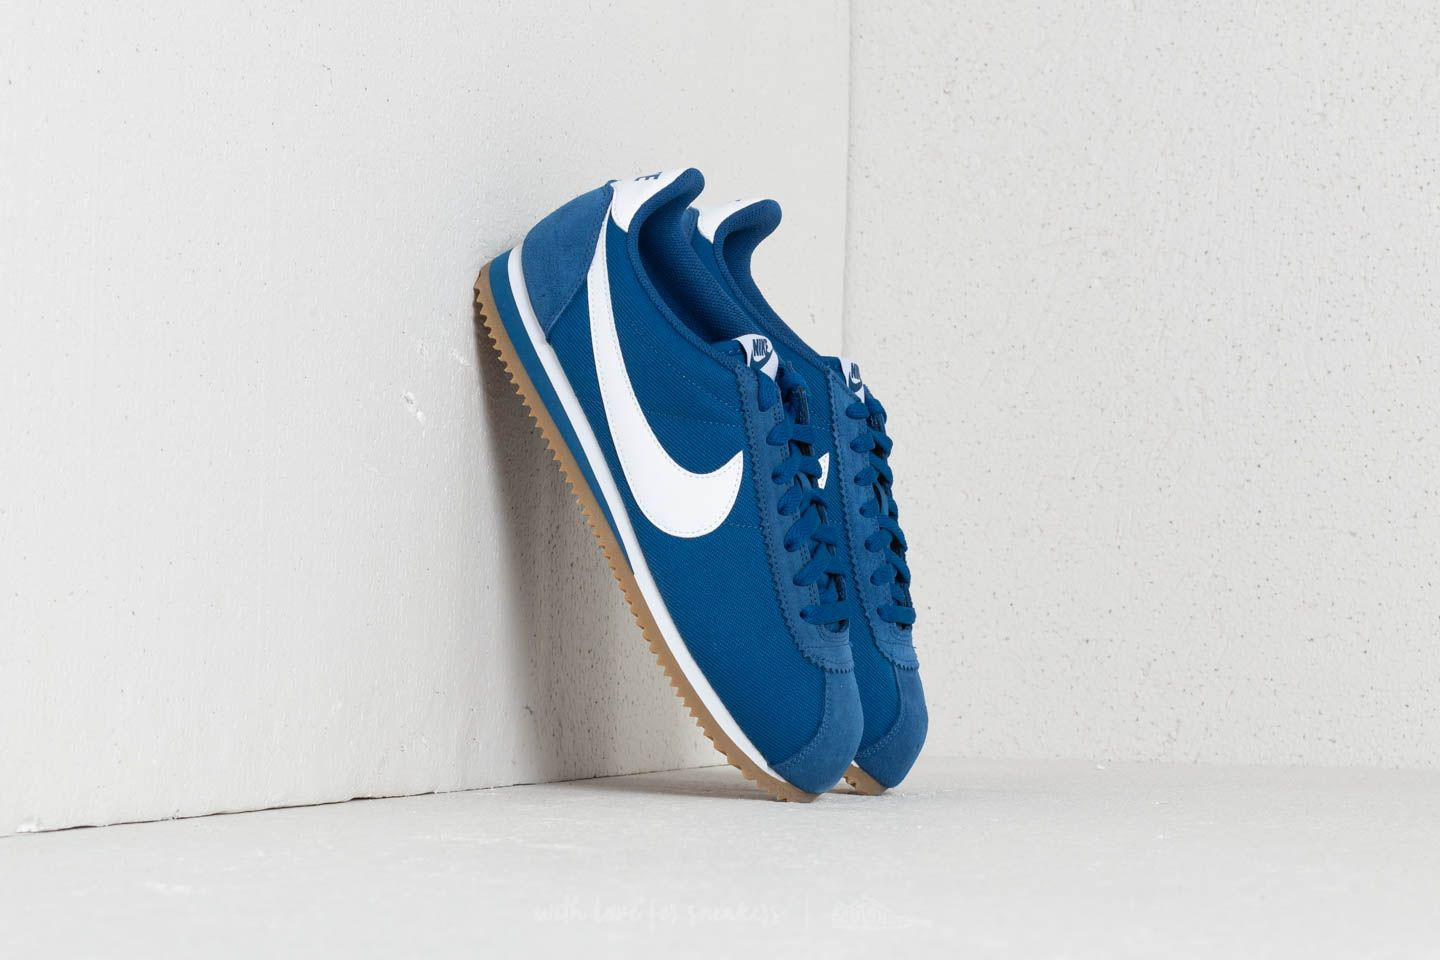 huge selection of 3ba50 070e6 ... switzerland lyst nike classic cortez nylon gym blue white gum light  brown in 9634c 700df